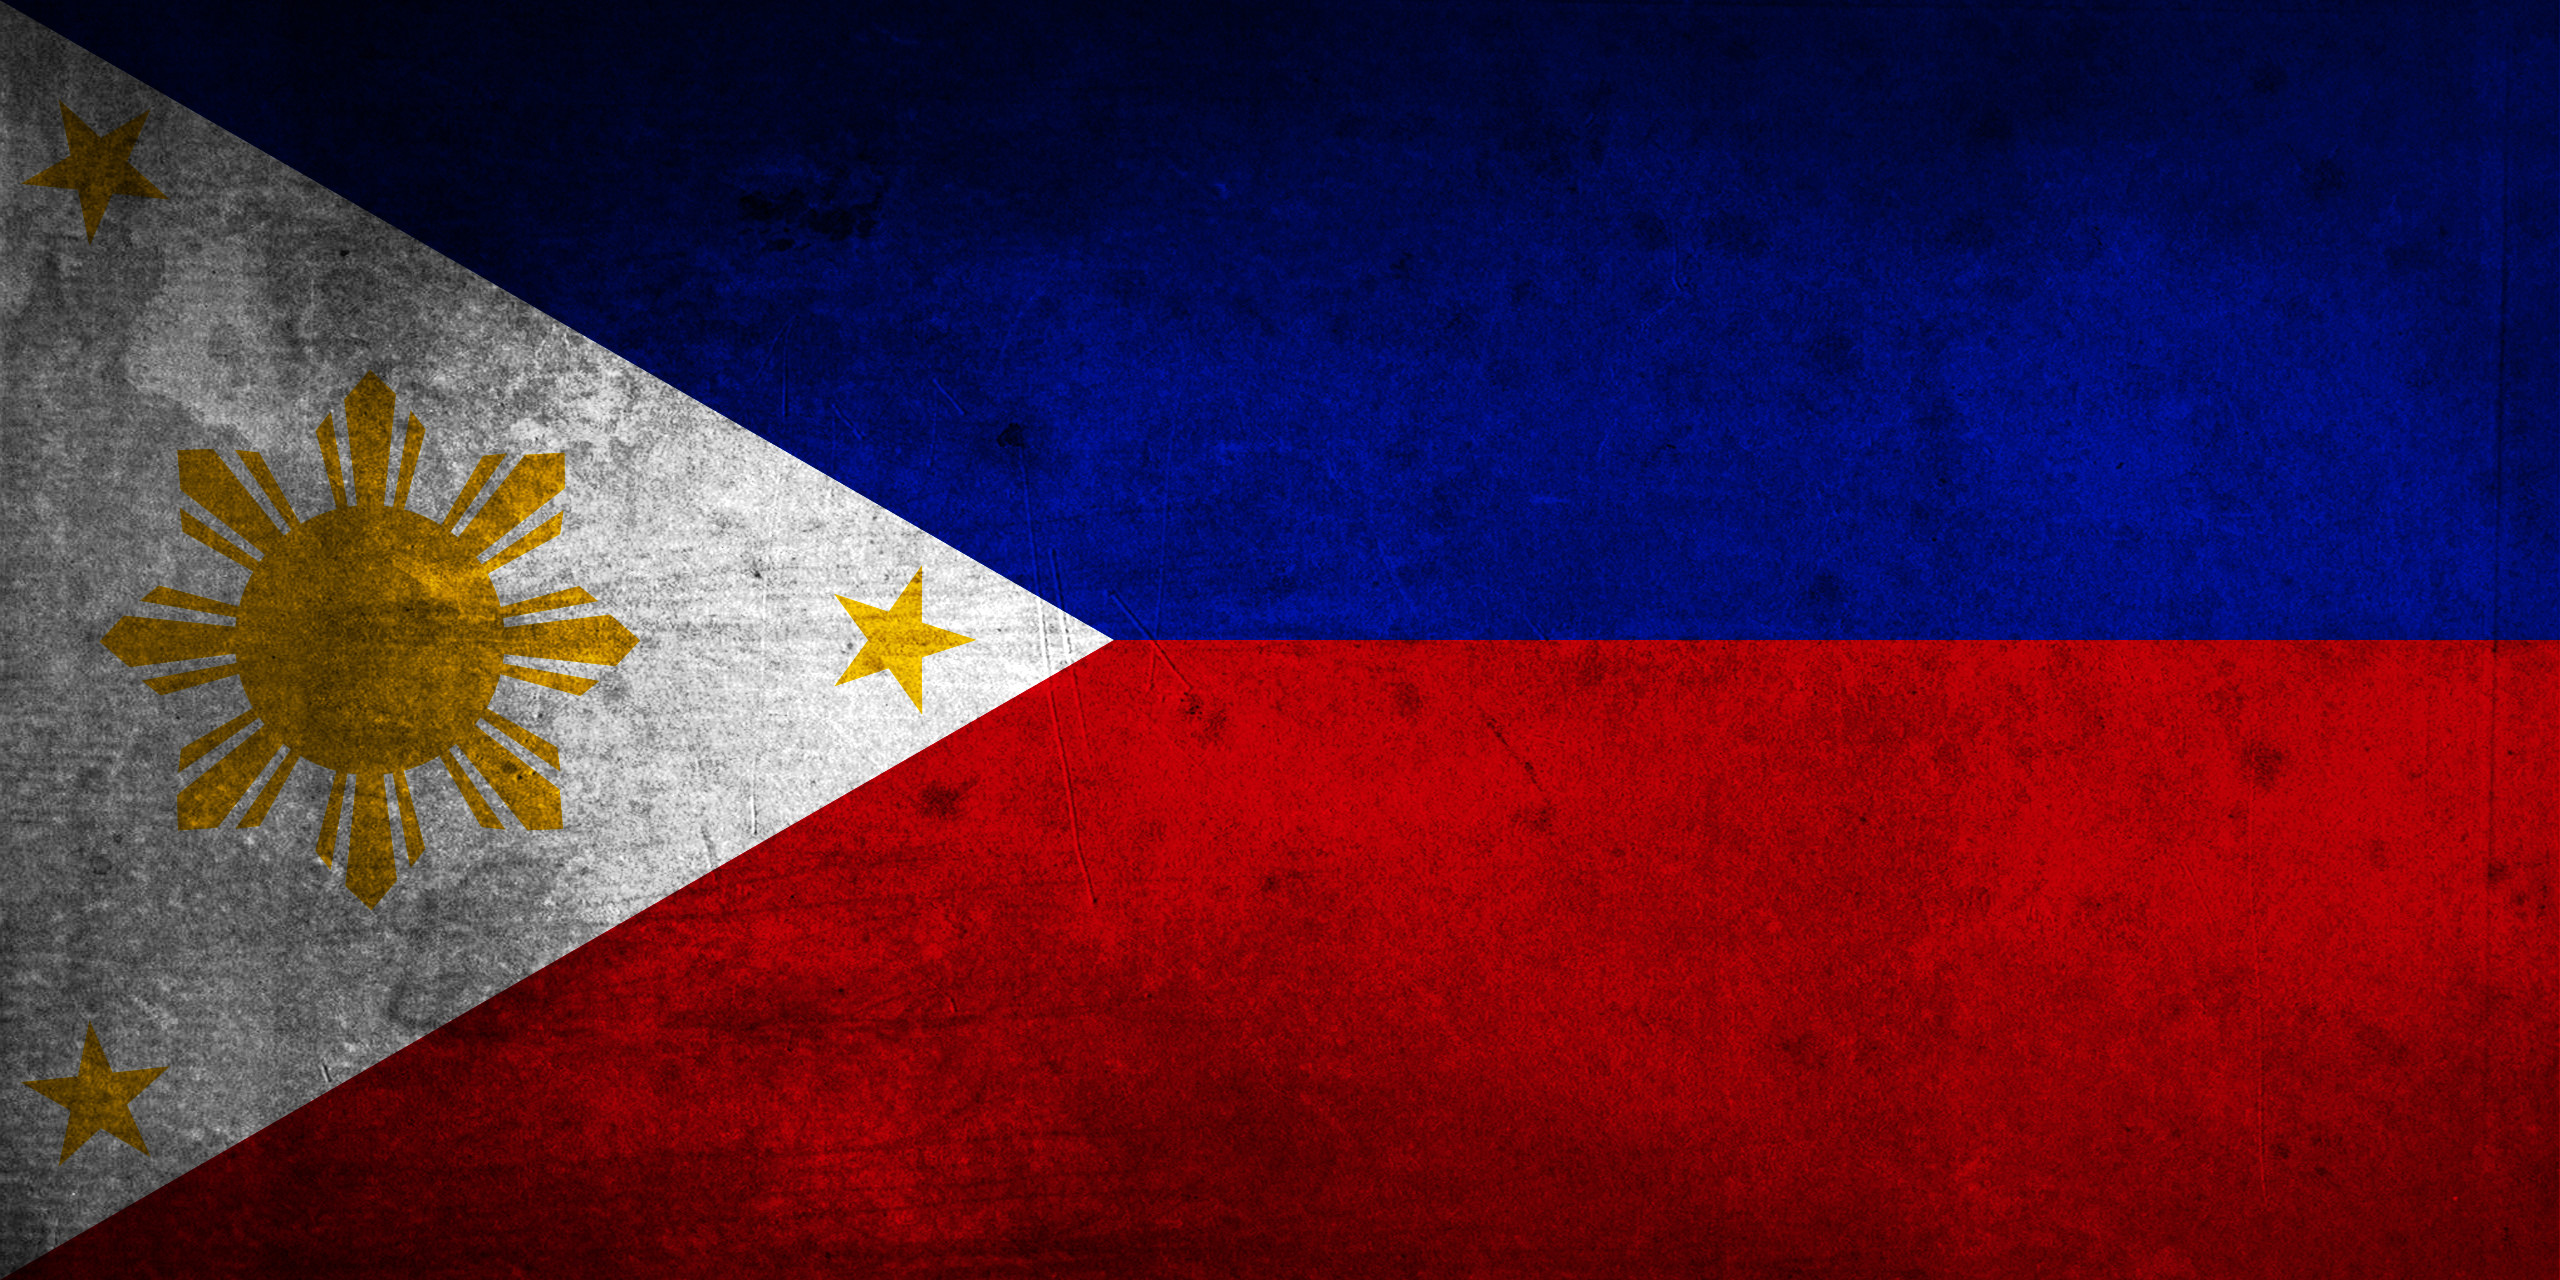 Eagle Wallpaper Iphone X Philippines Flag Wallpaper 63 Images